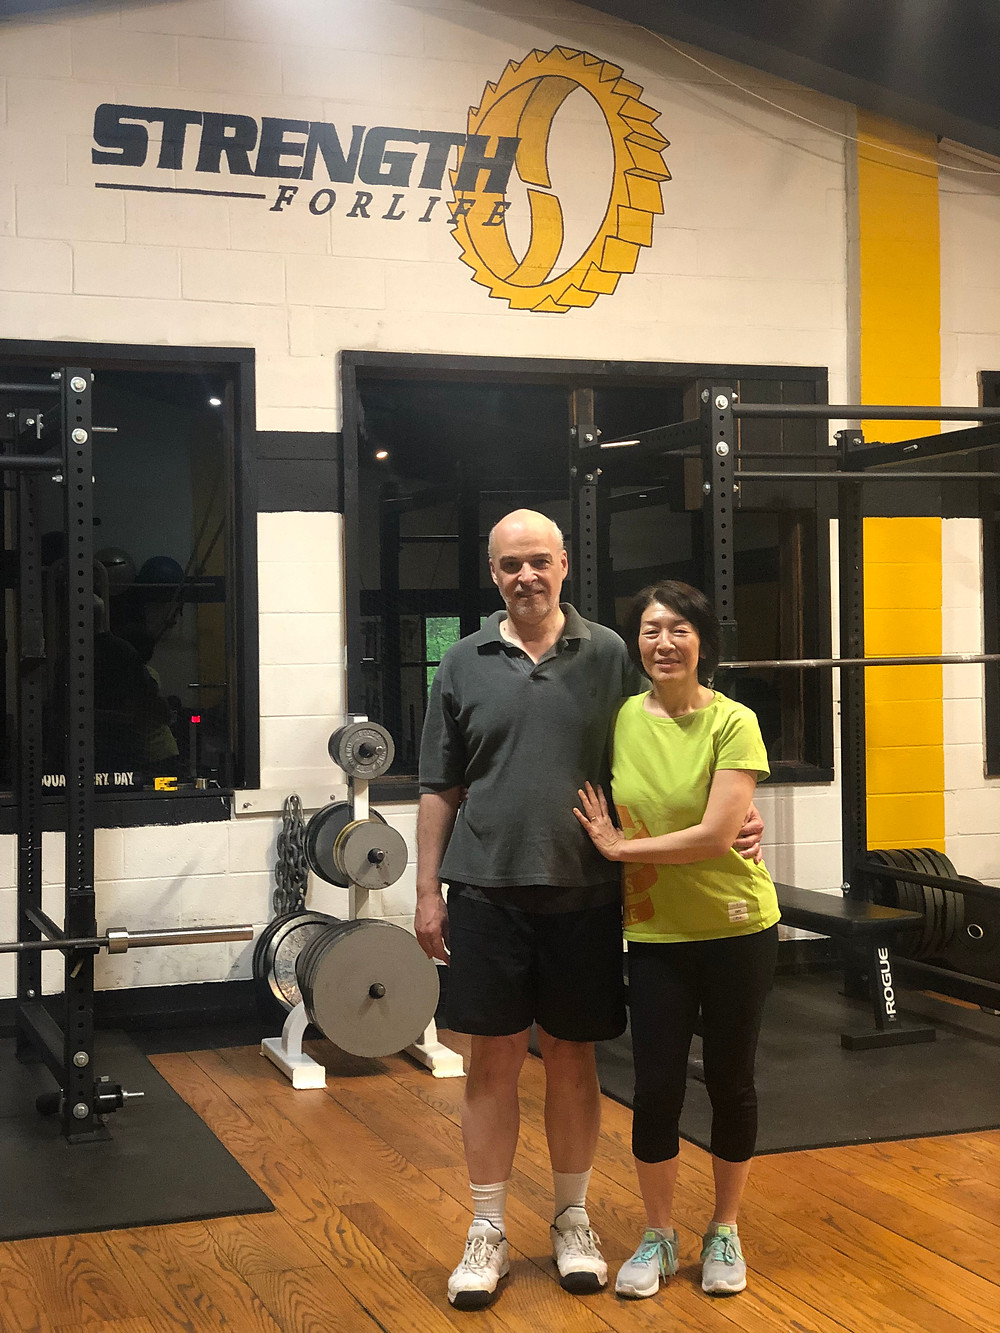 Clients, Strength for Life, two people